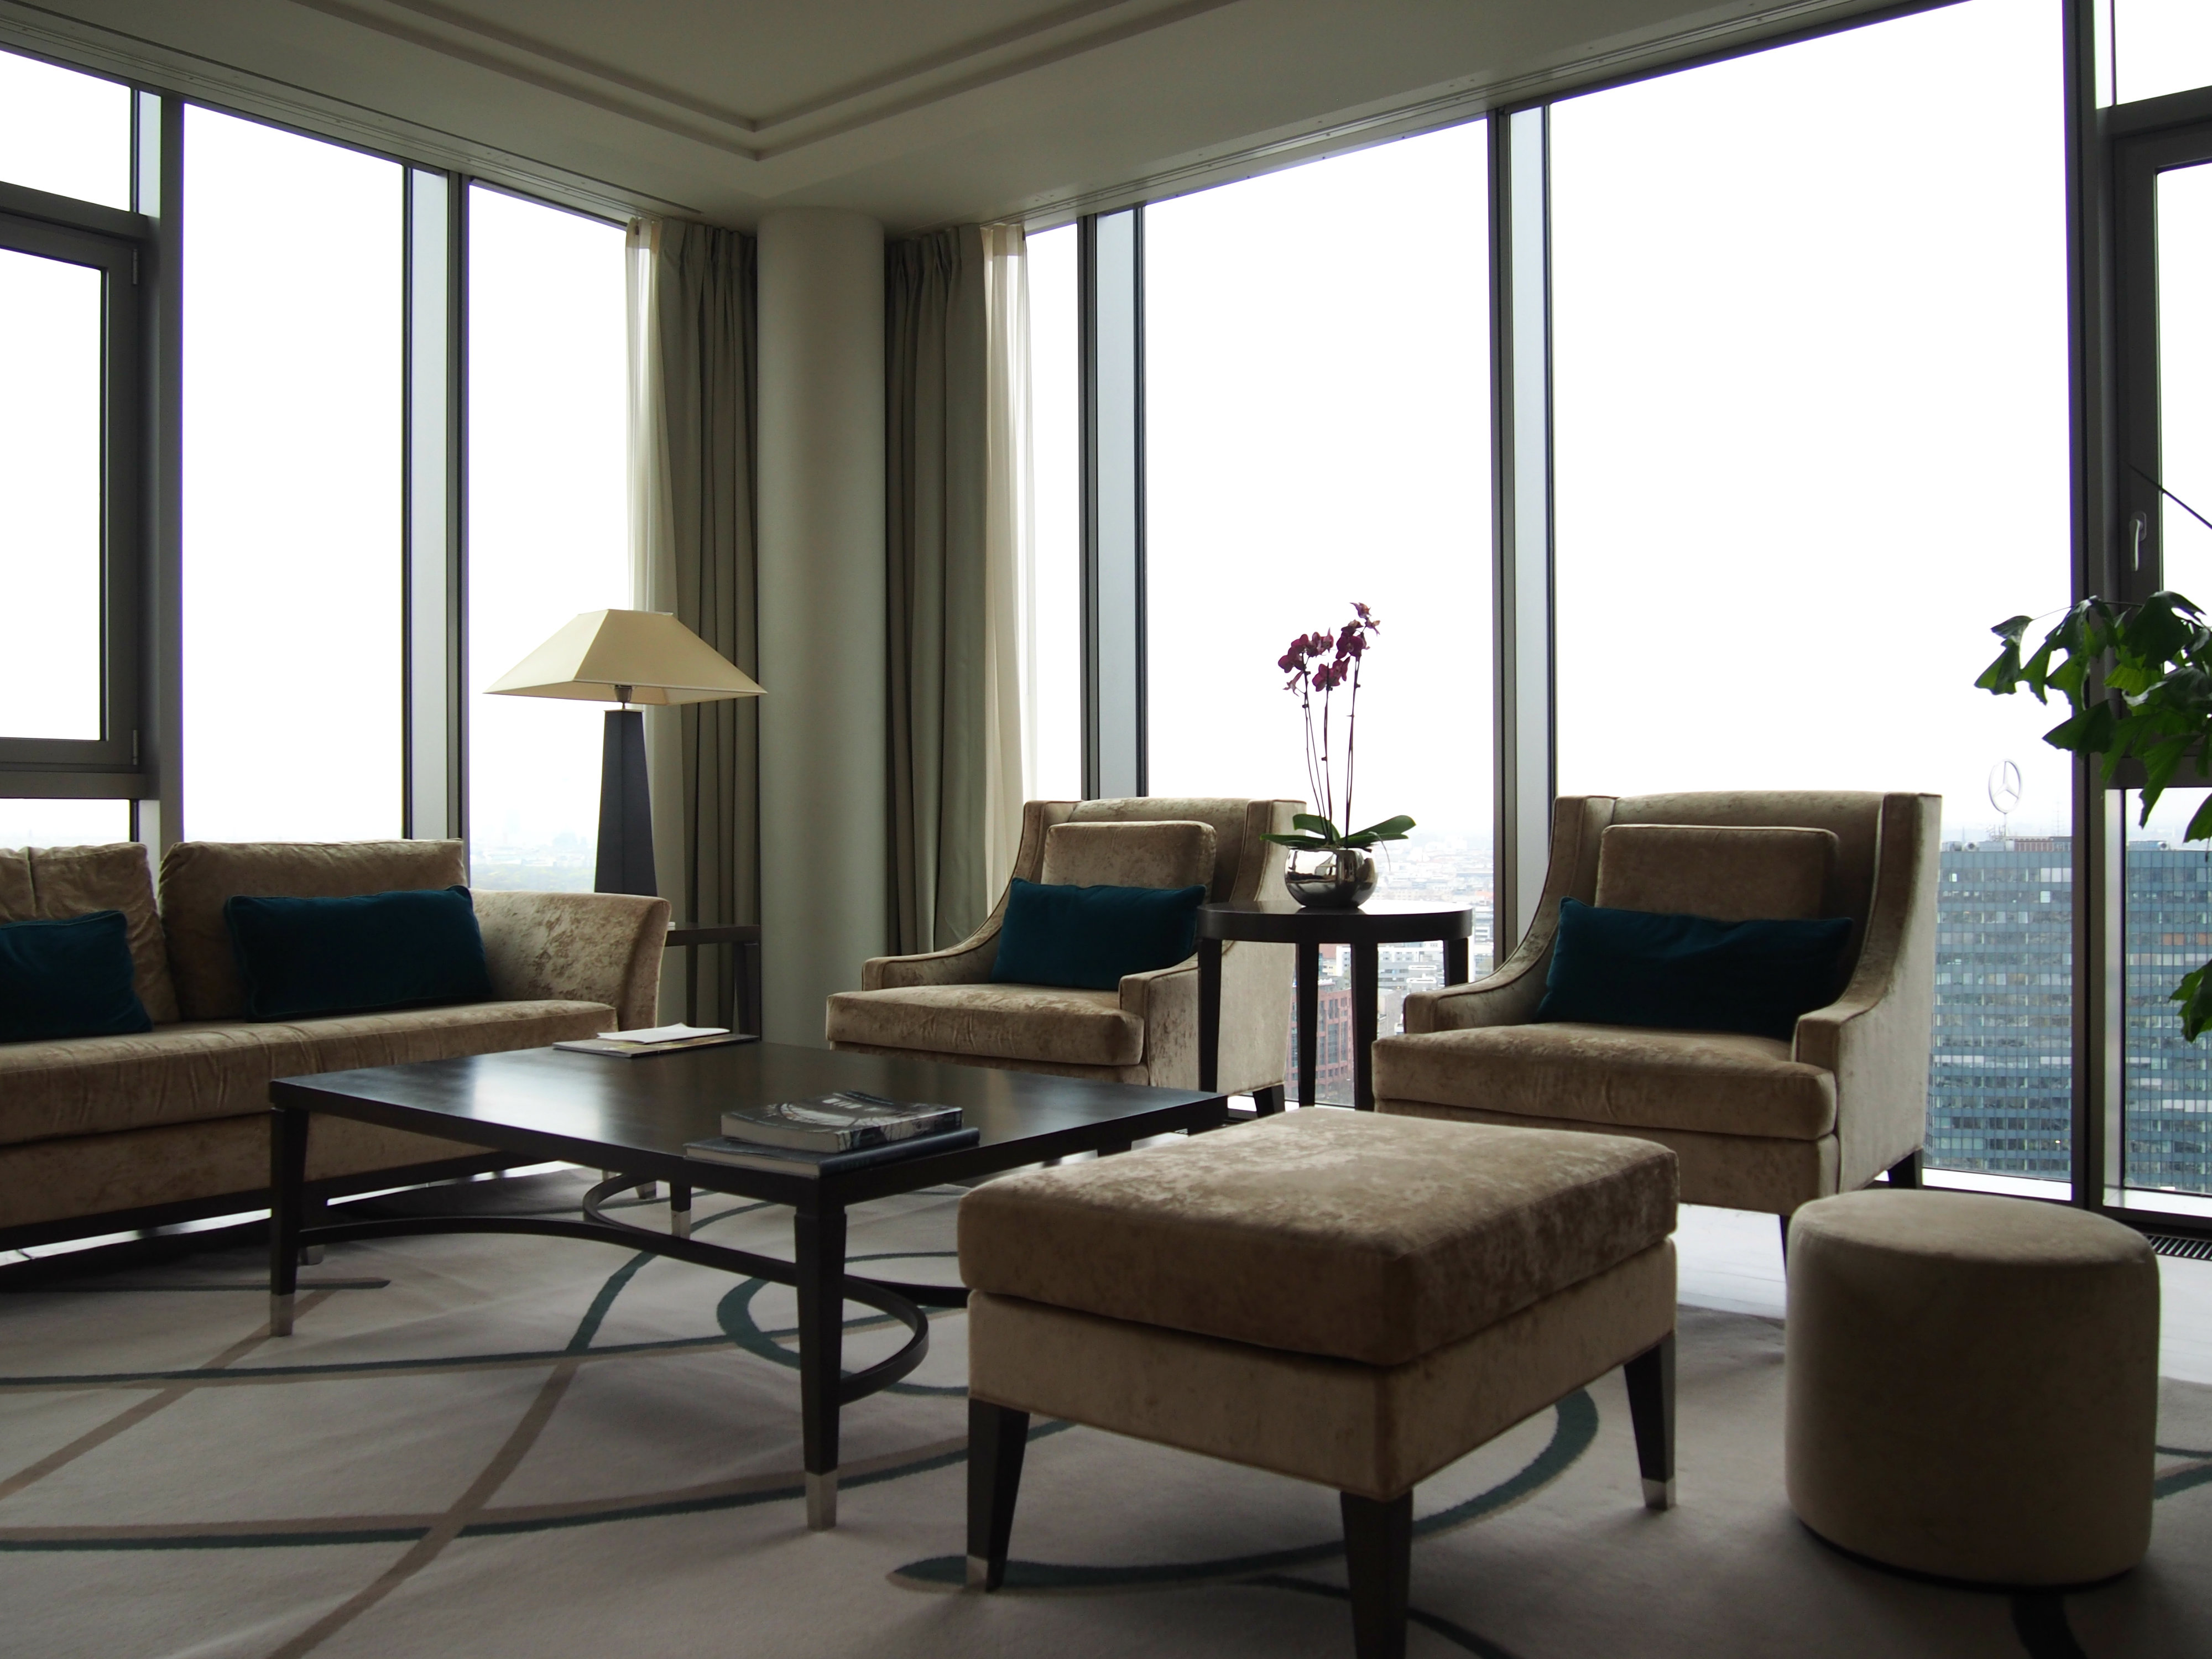 Waldorf Astoria Berlin Tower Suite livingroom 2